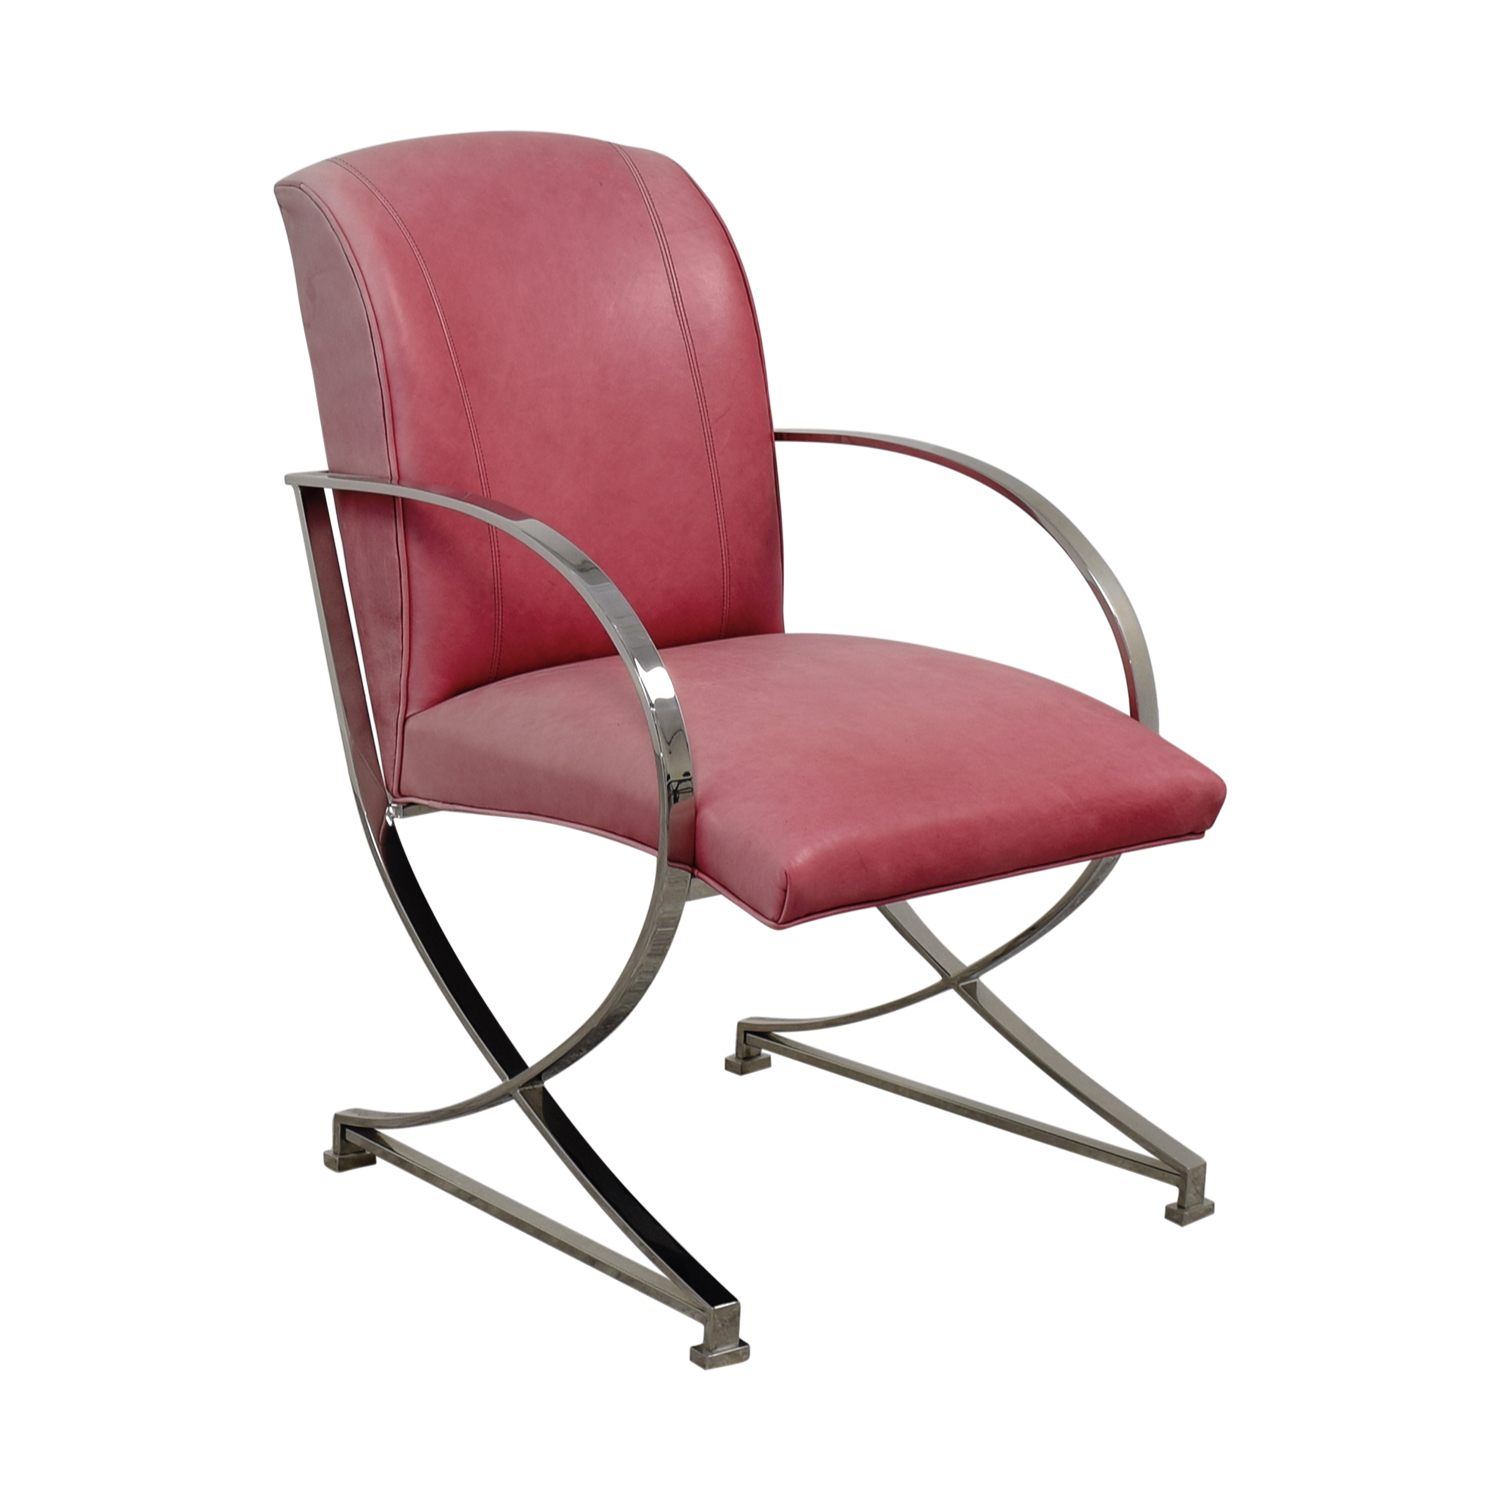 Buy Century Furniture Stainless Steel Pink Leather Chair Century Furniture